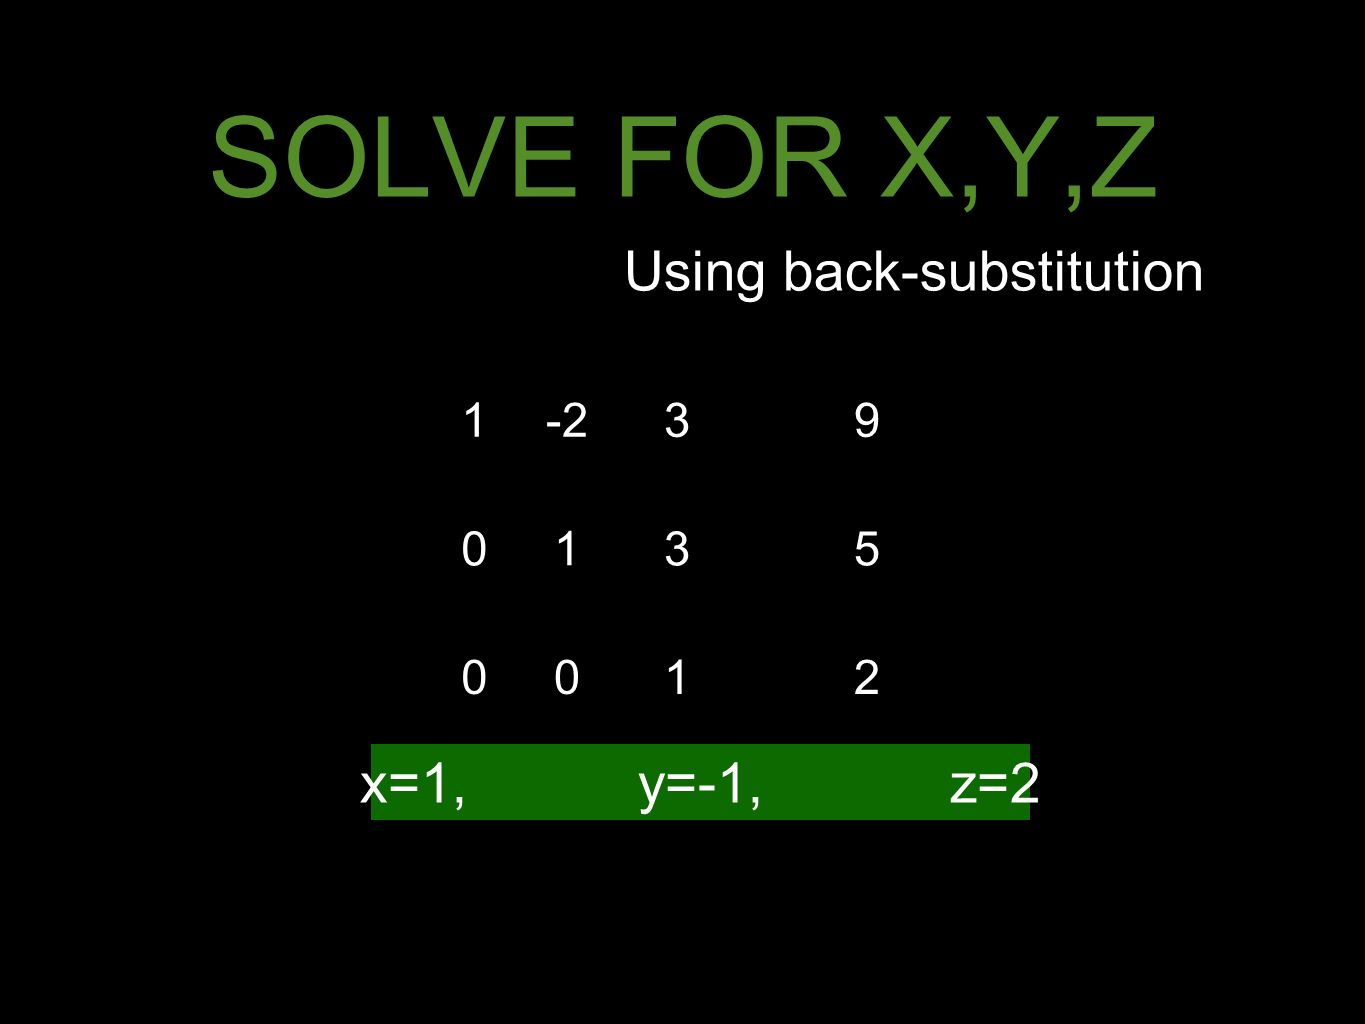 Using back-substitution